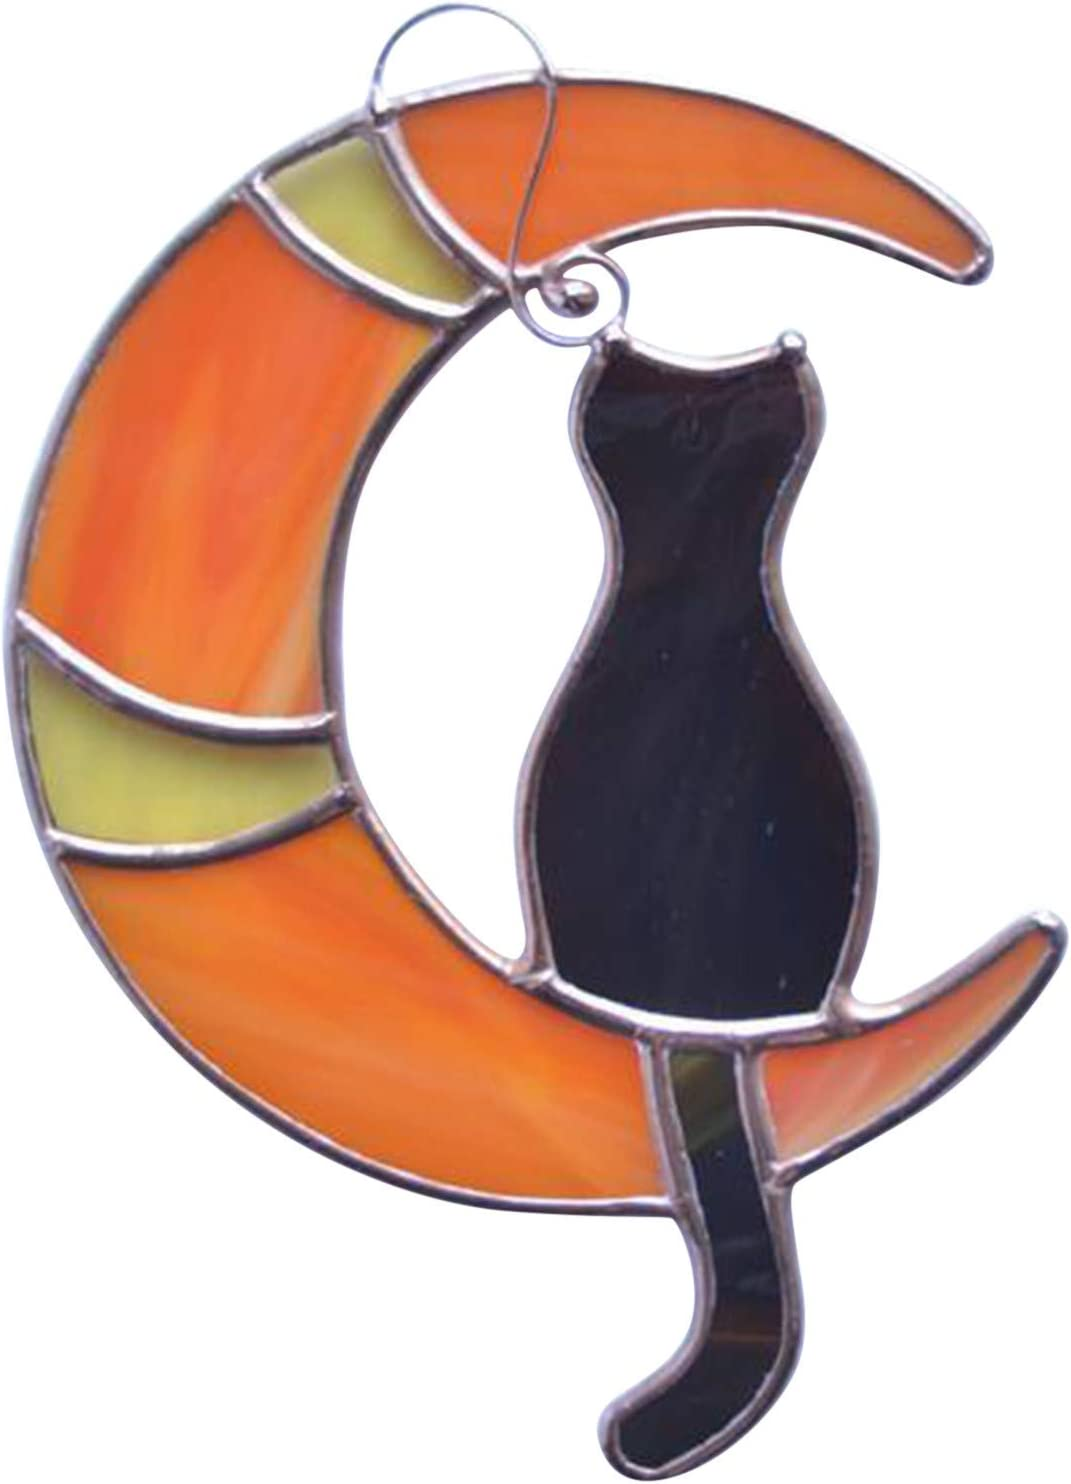 Stained Glass Window Fashion Hangings Black Cat Hangi Max 71% OFF The On Moon